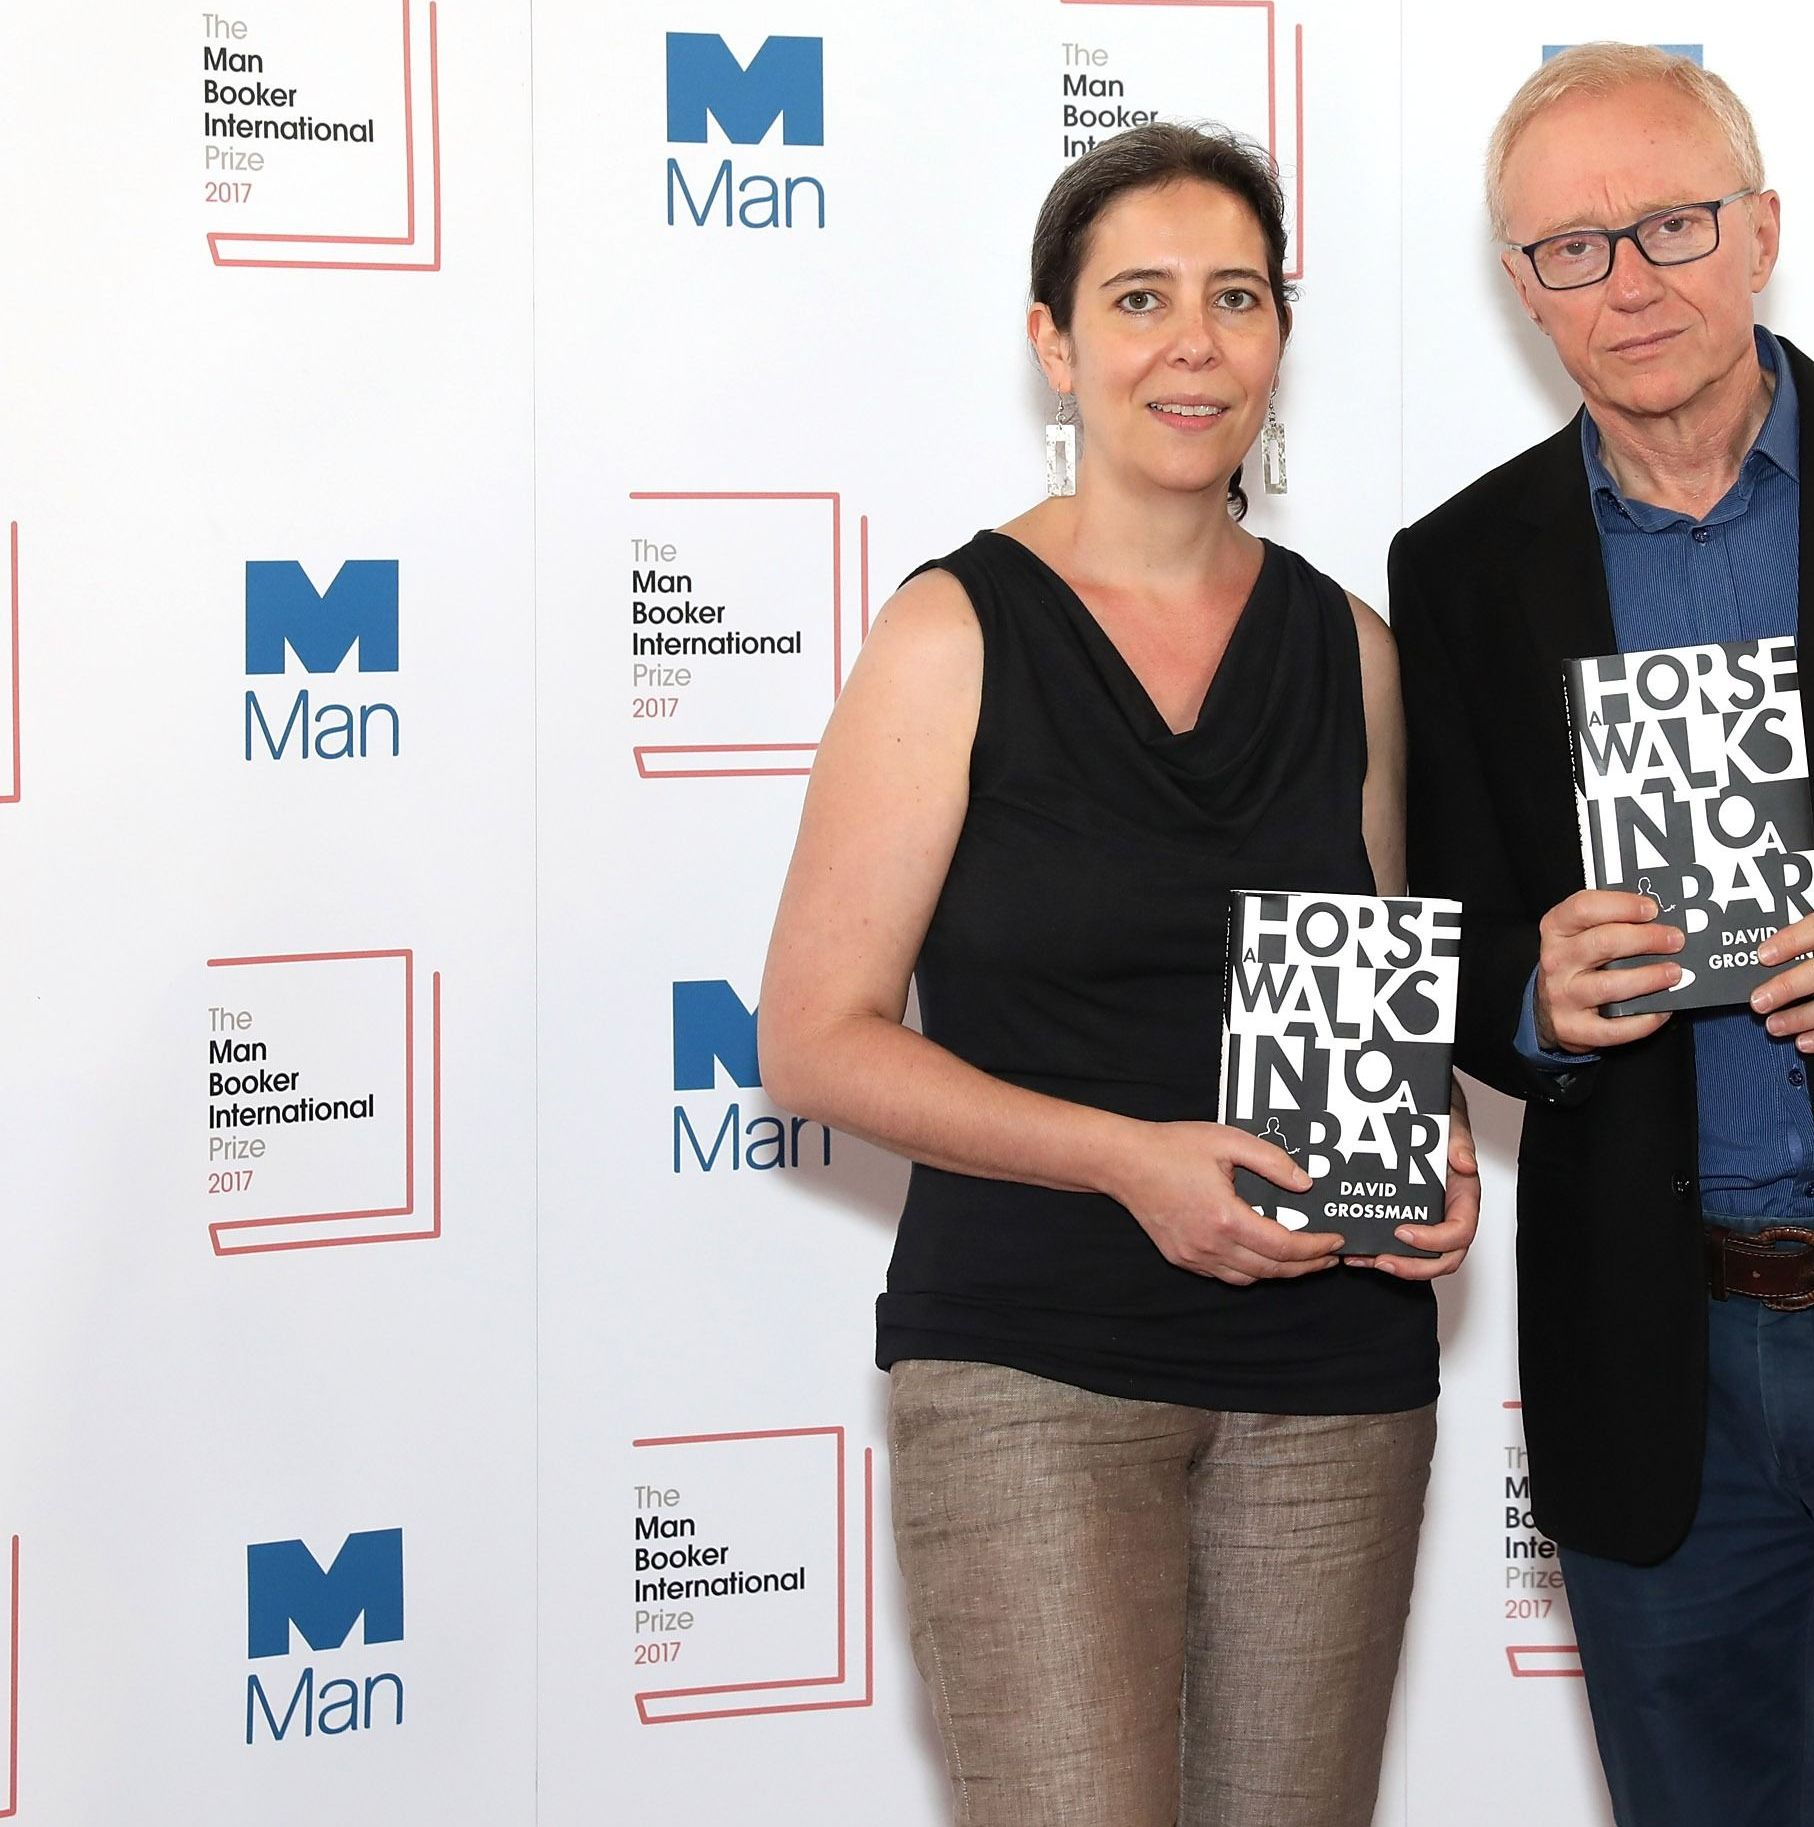 Israel's David Grossman wins International Booker Prize